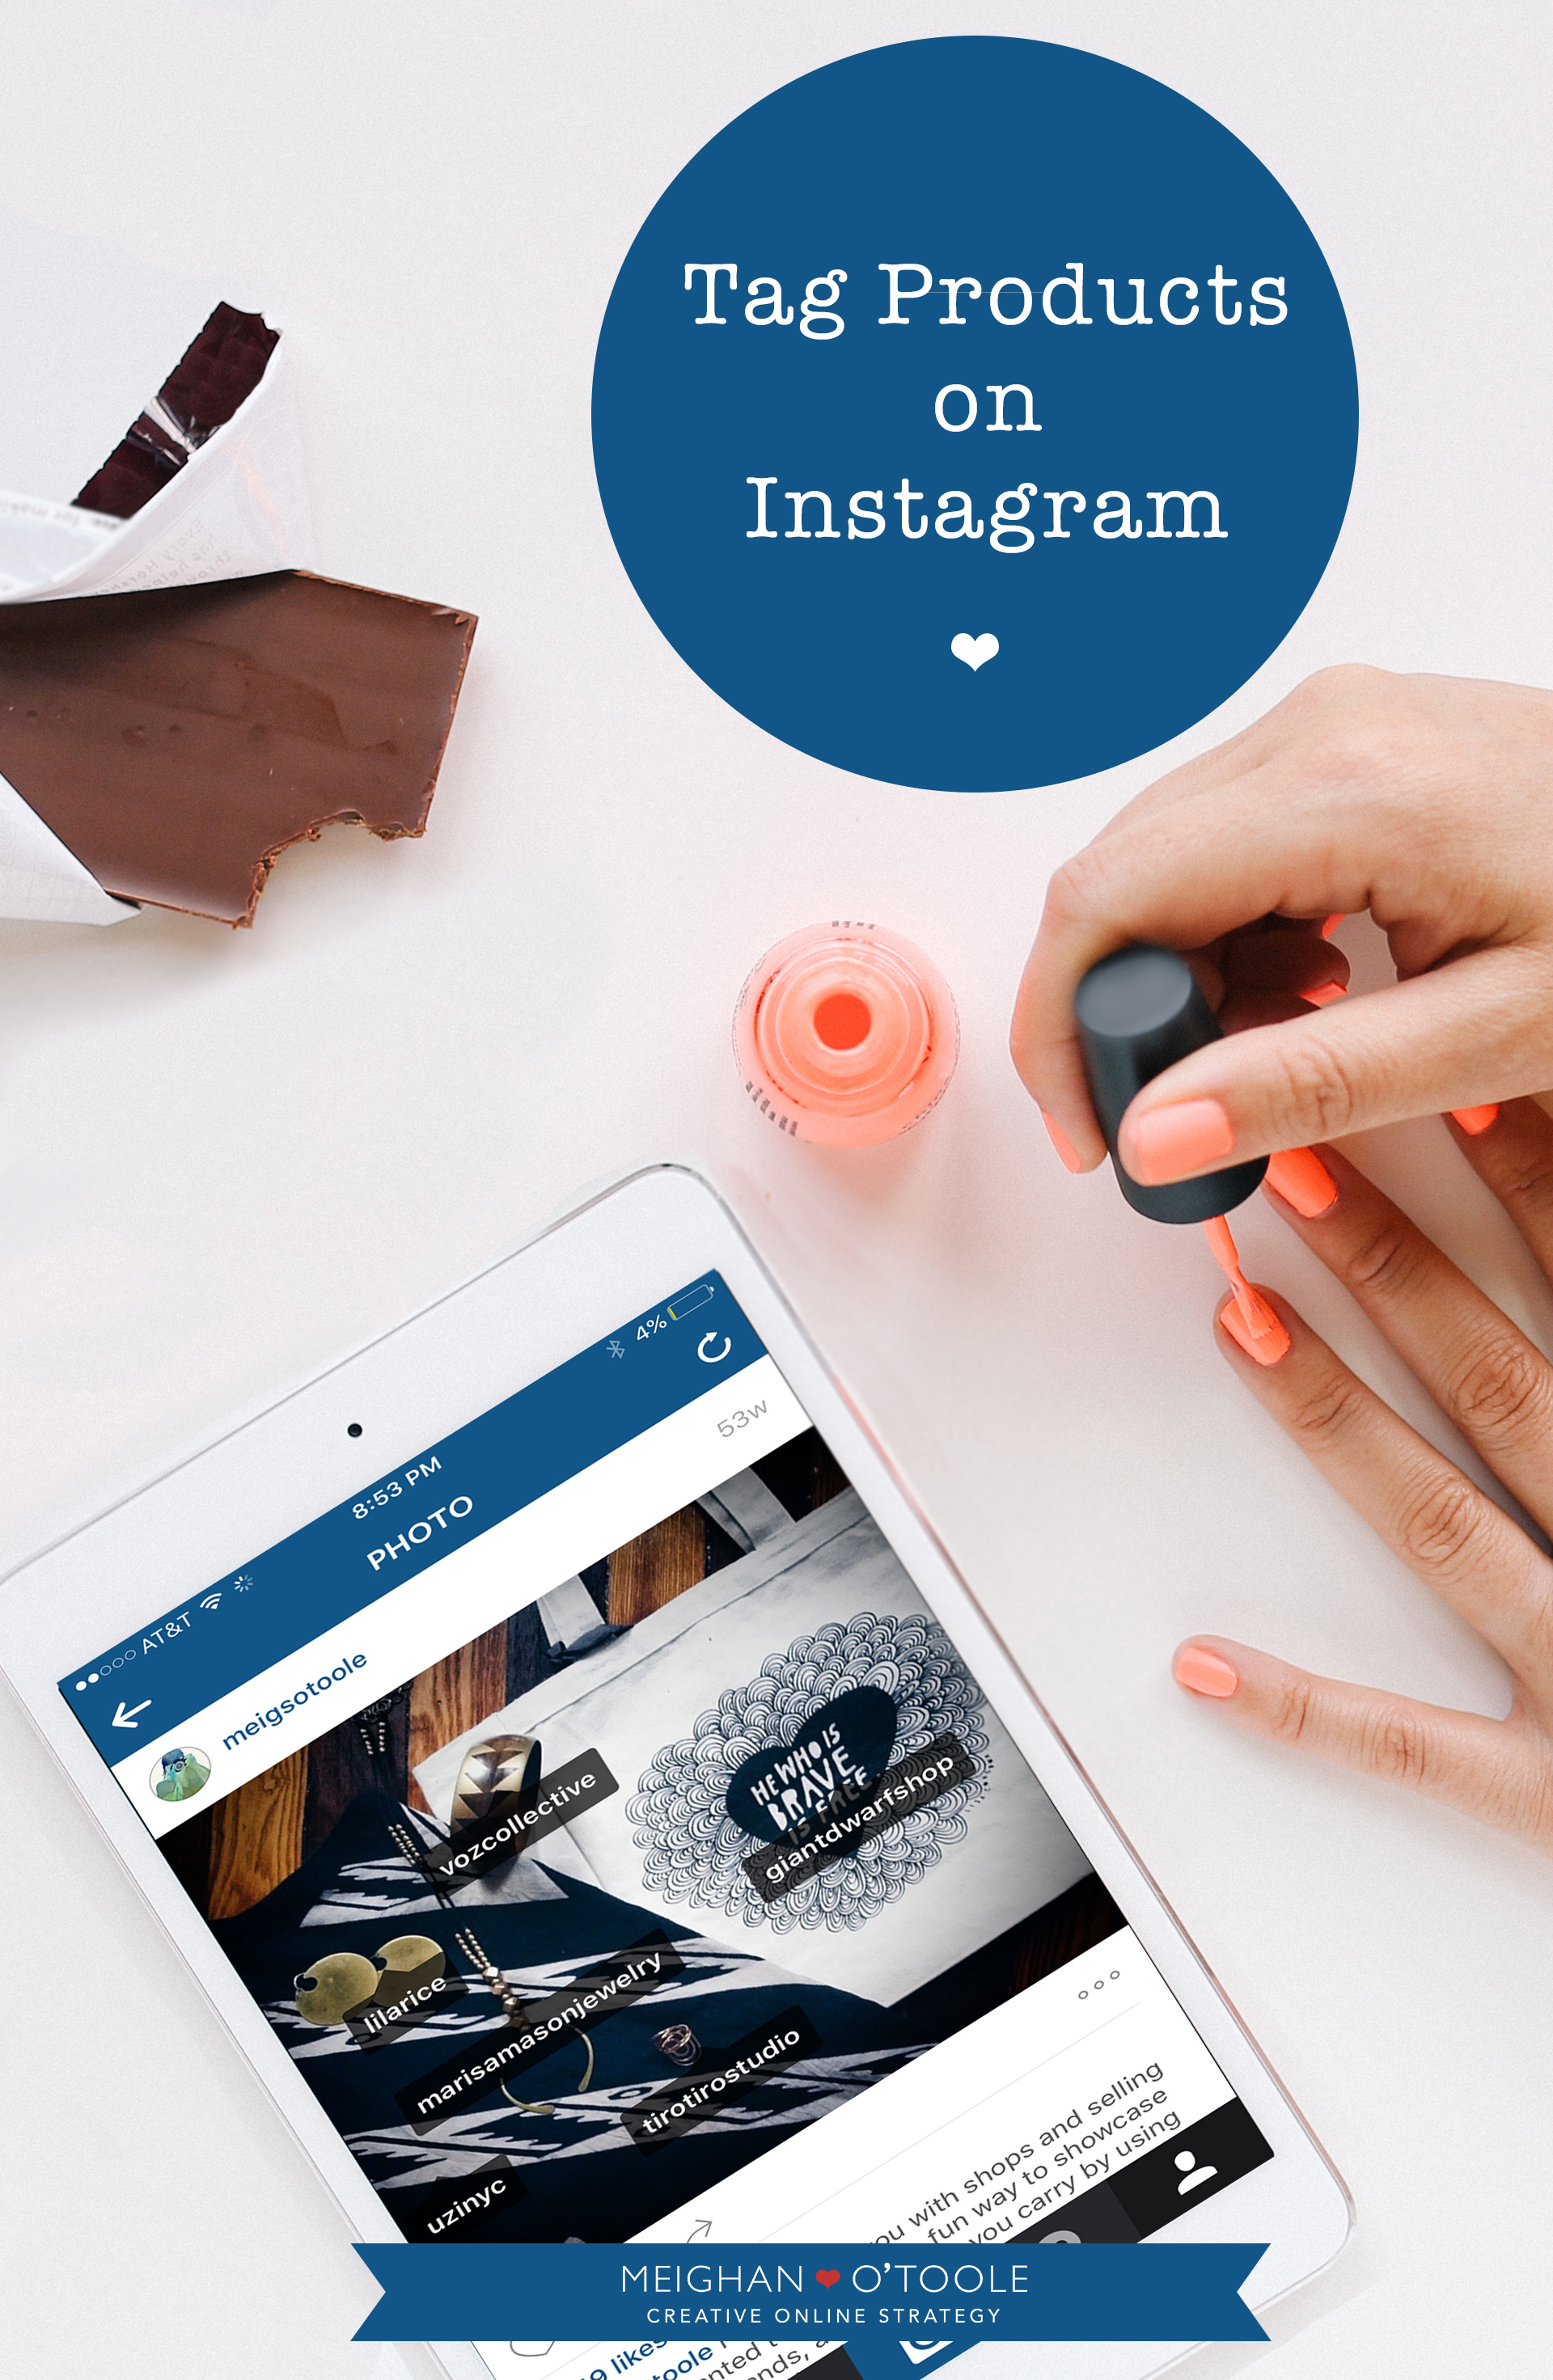 Use Instagram's tag feature to showcase products!